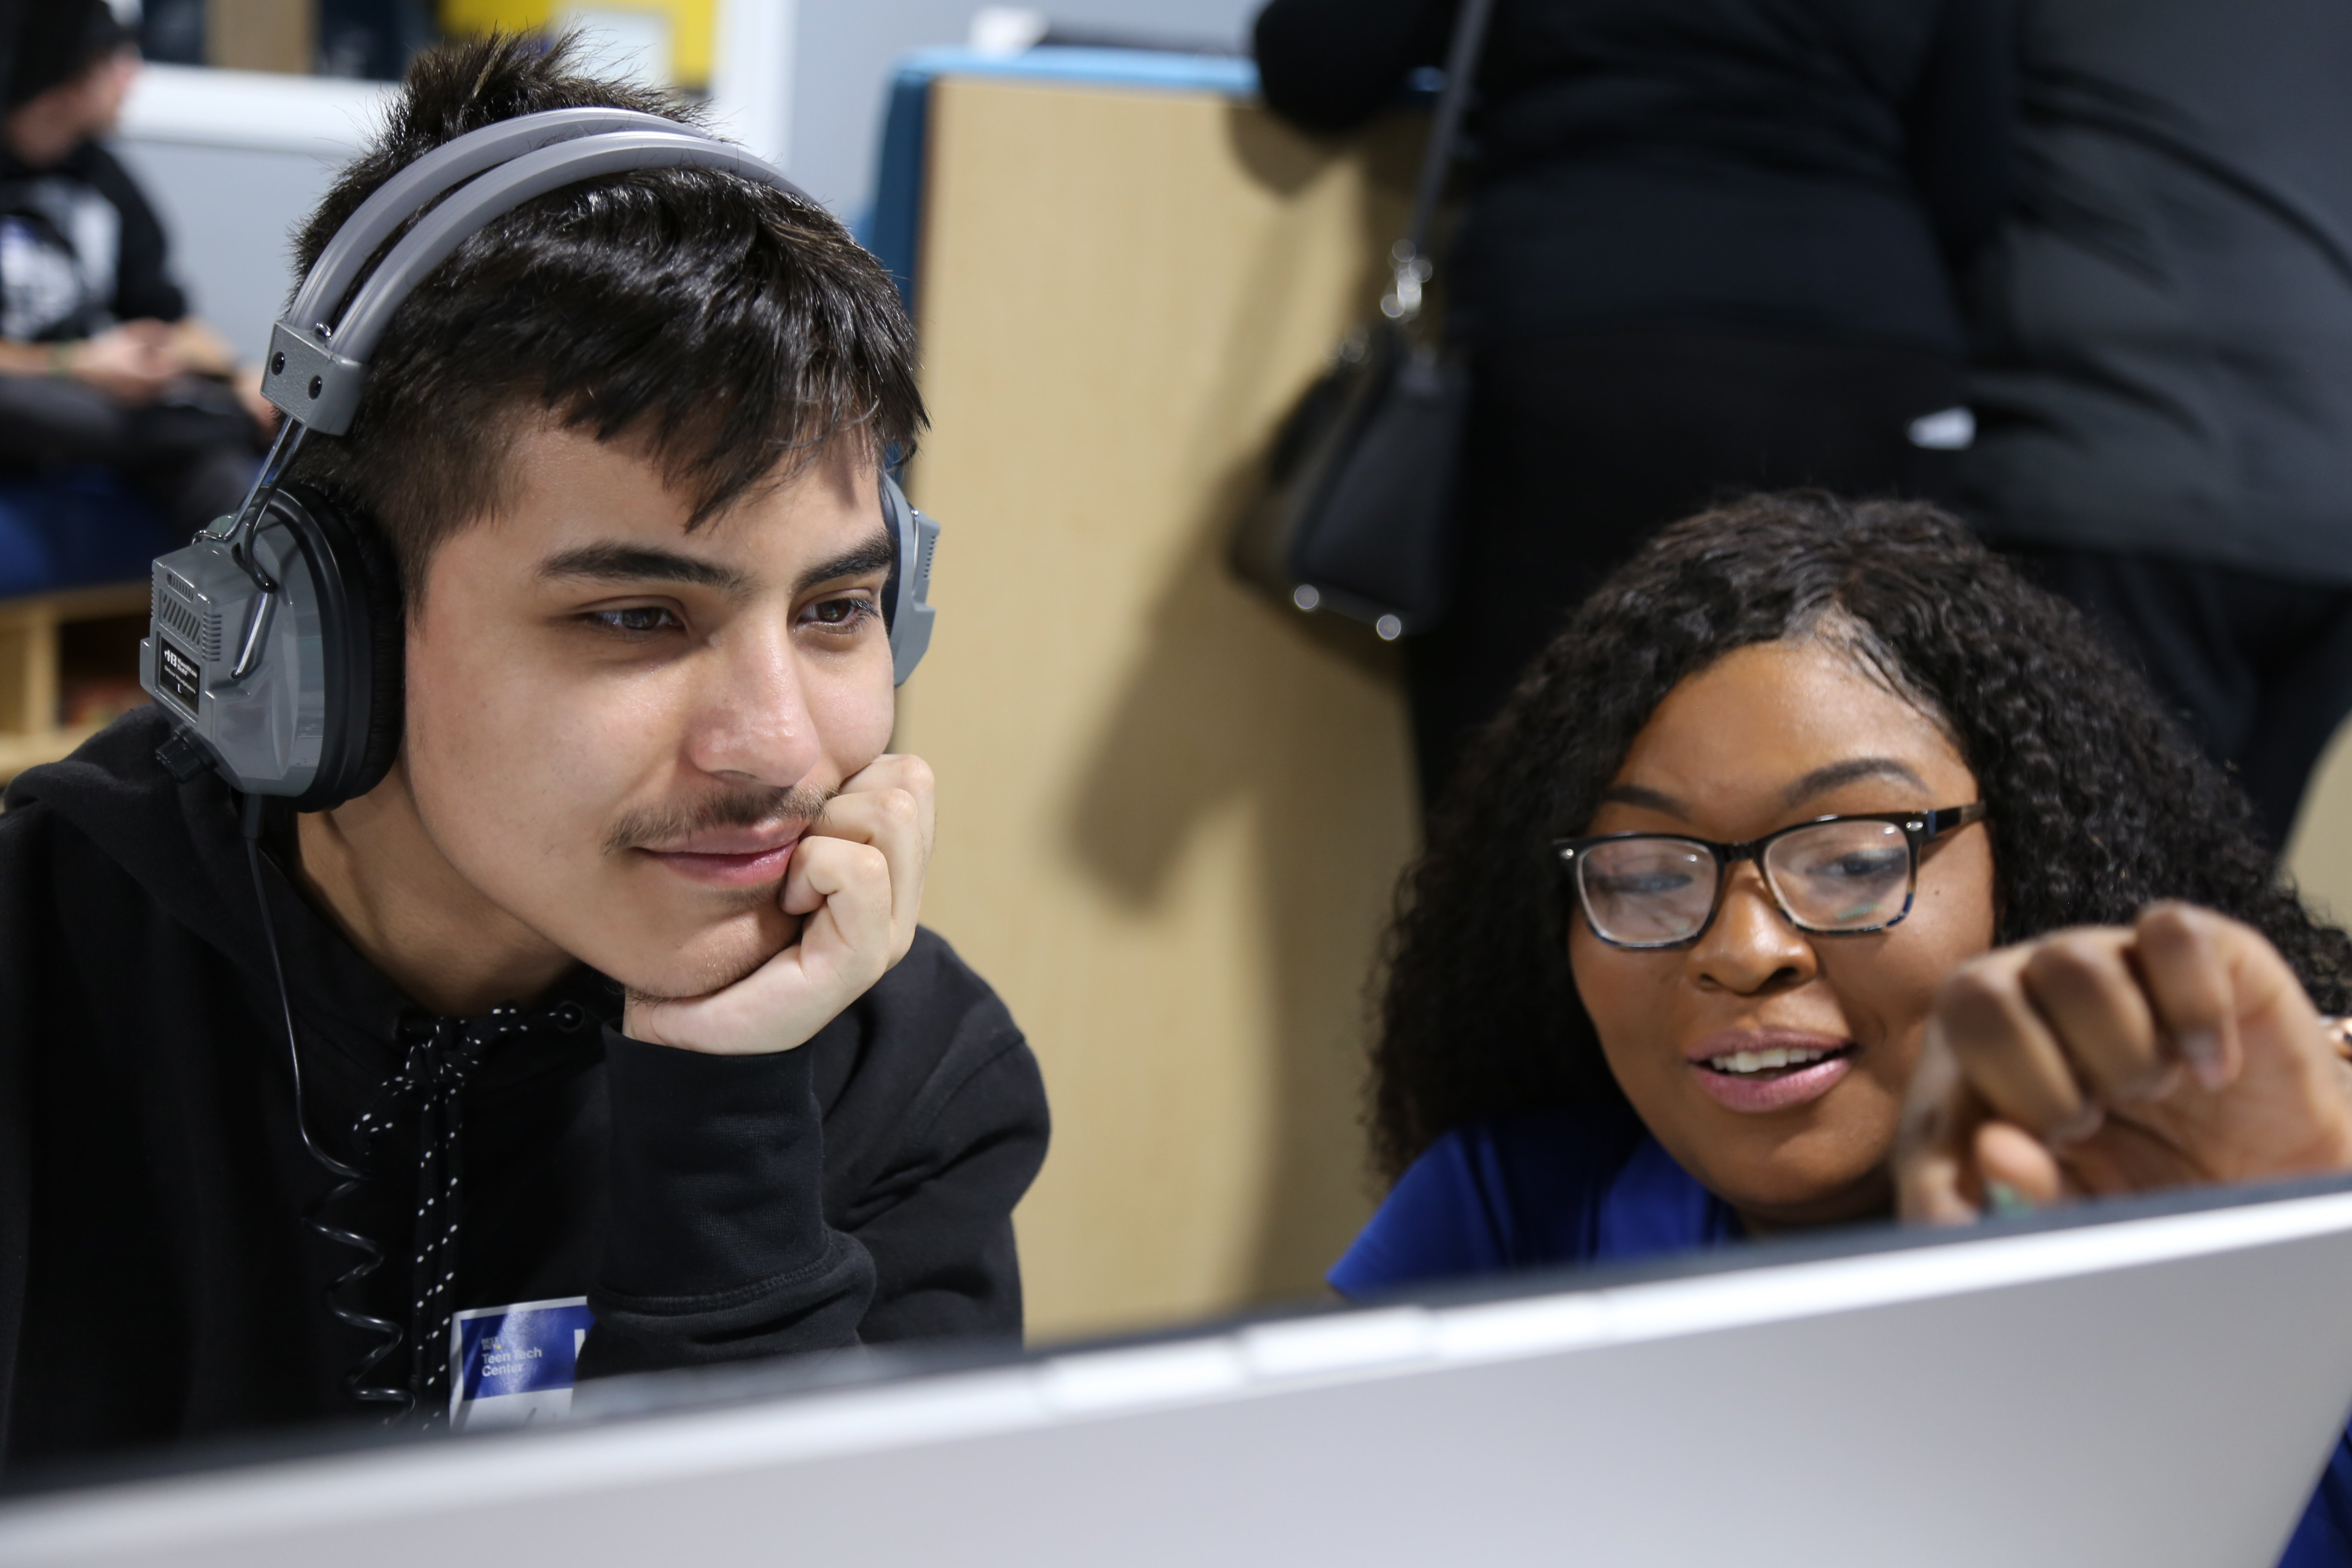 A woman helps a young man with a project in front of a computer